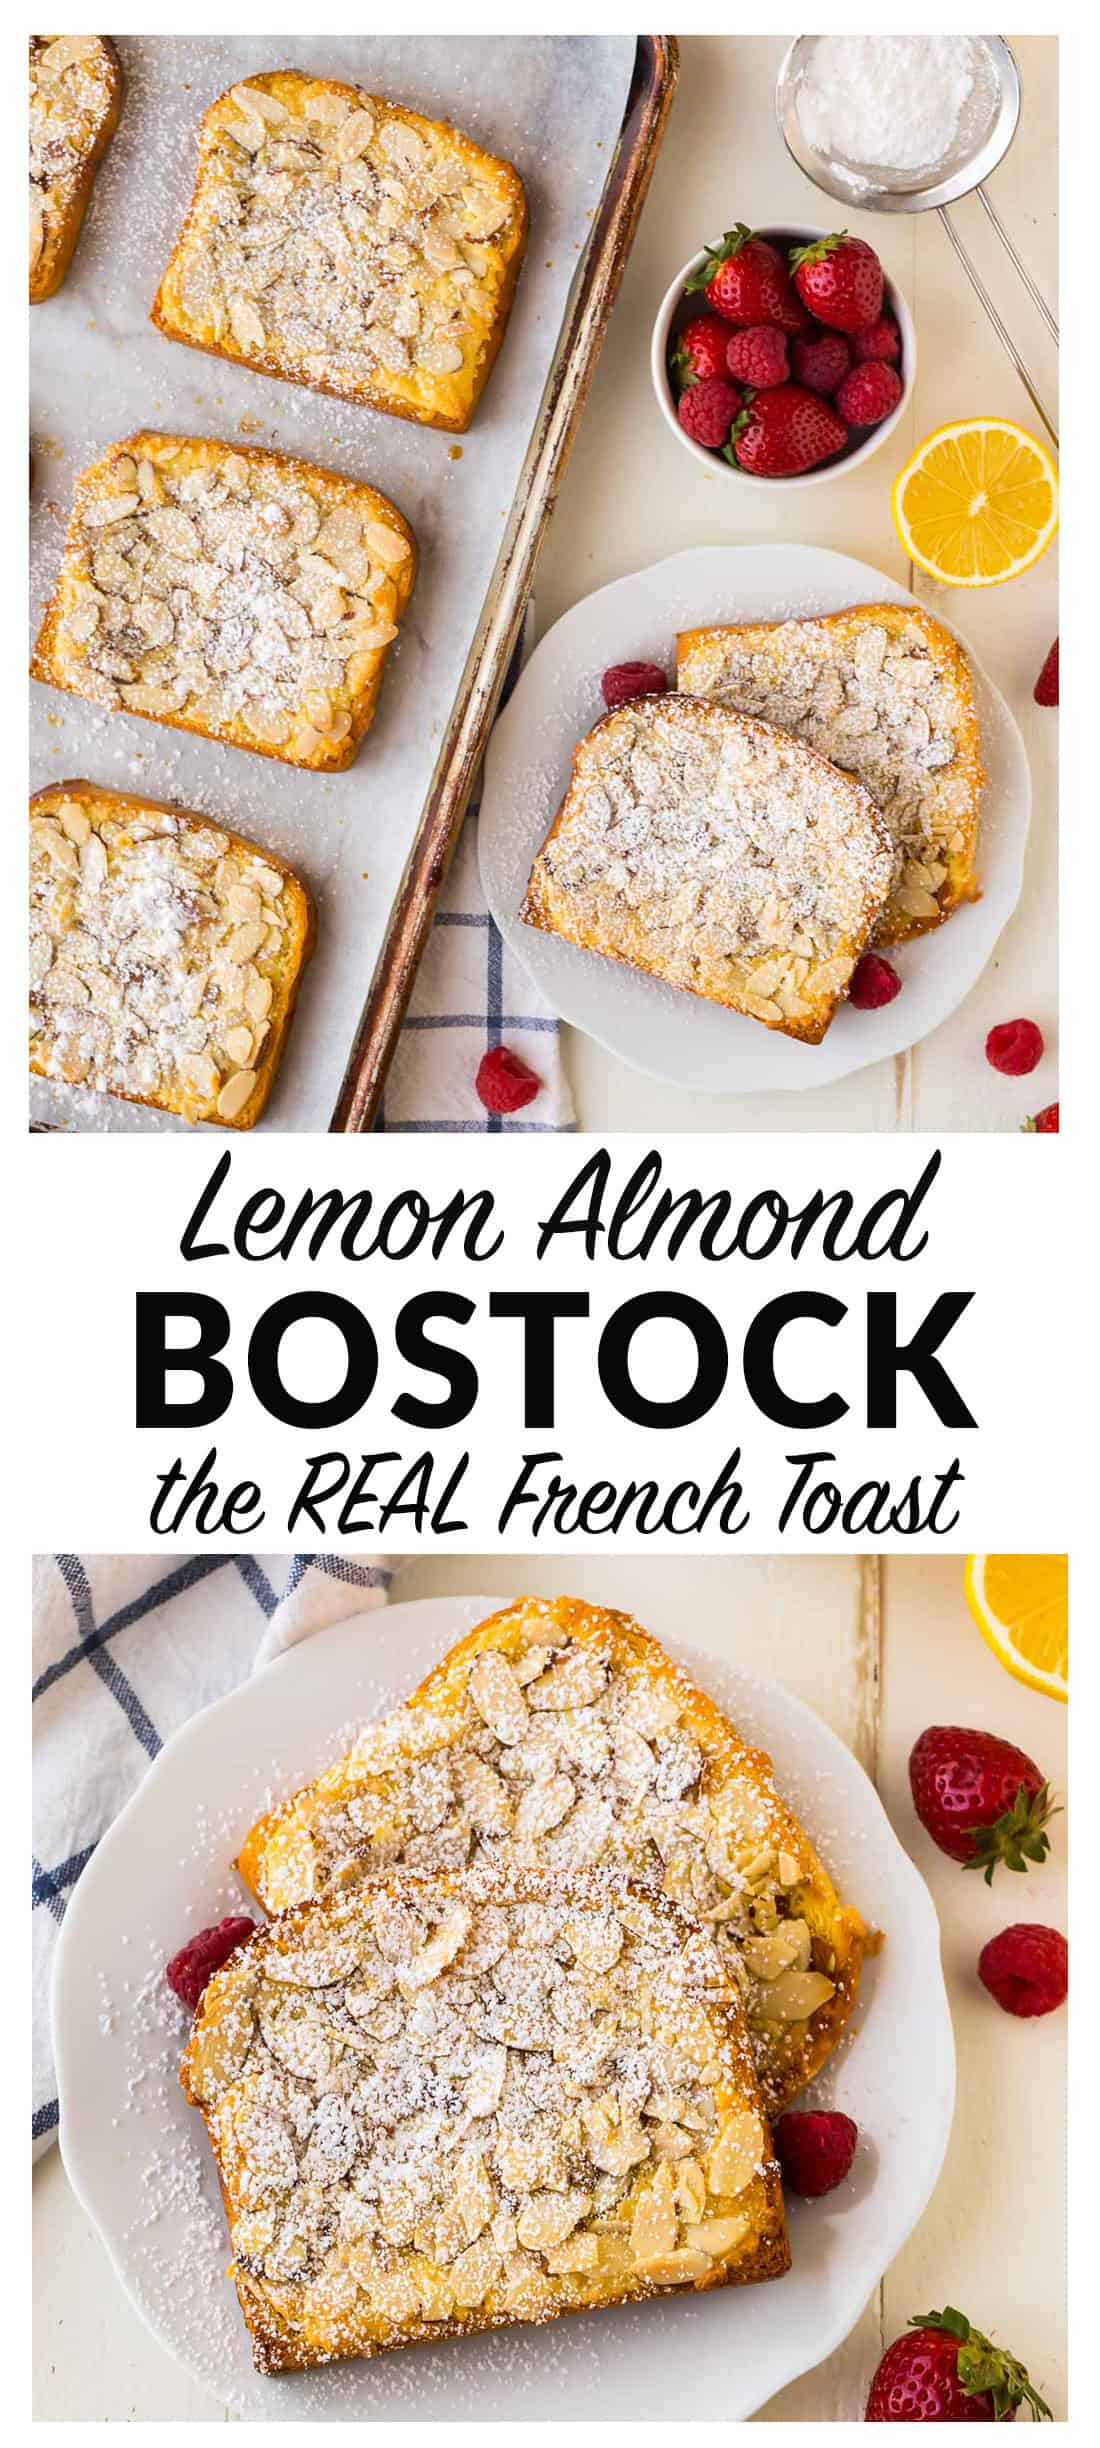 How to make Bostock pastry: Brioche soaked in syrup and topped with lemon almond cream, sliced almonds, and baked, brioche bostock tastes like the absolute best French breakfast toast you've ever eaten!  #bostock #french #pastry